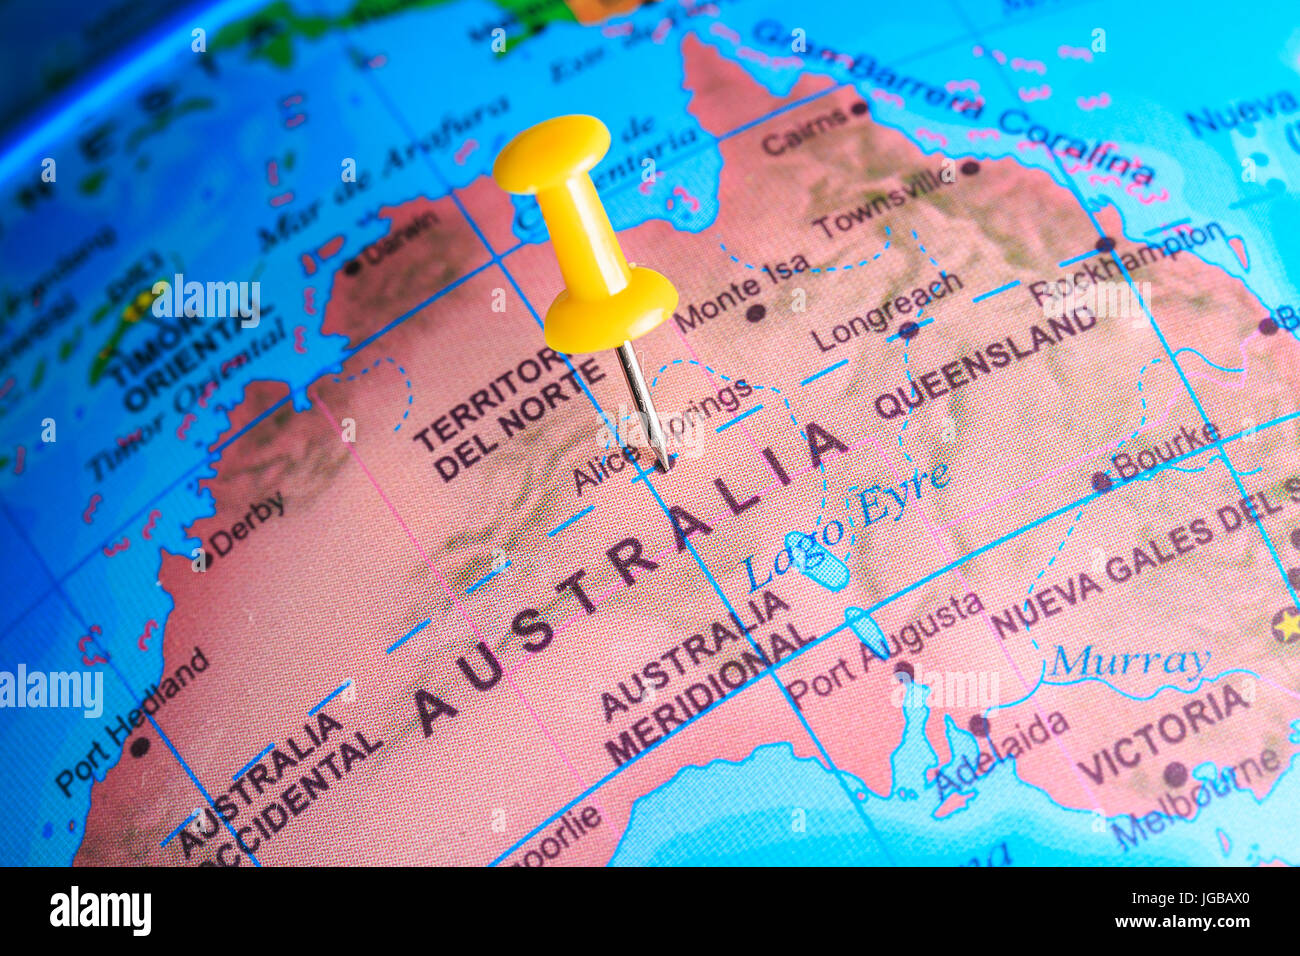 Australia pinned on a map of  Oceania - Stock Image